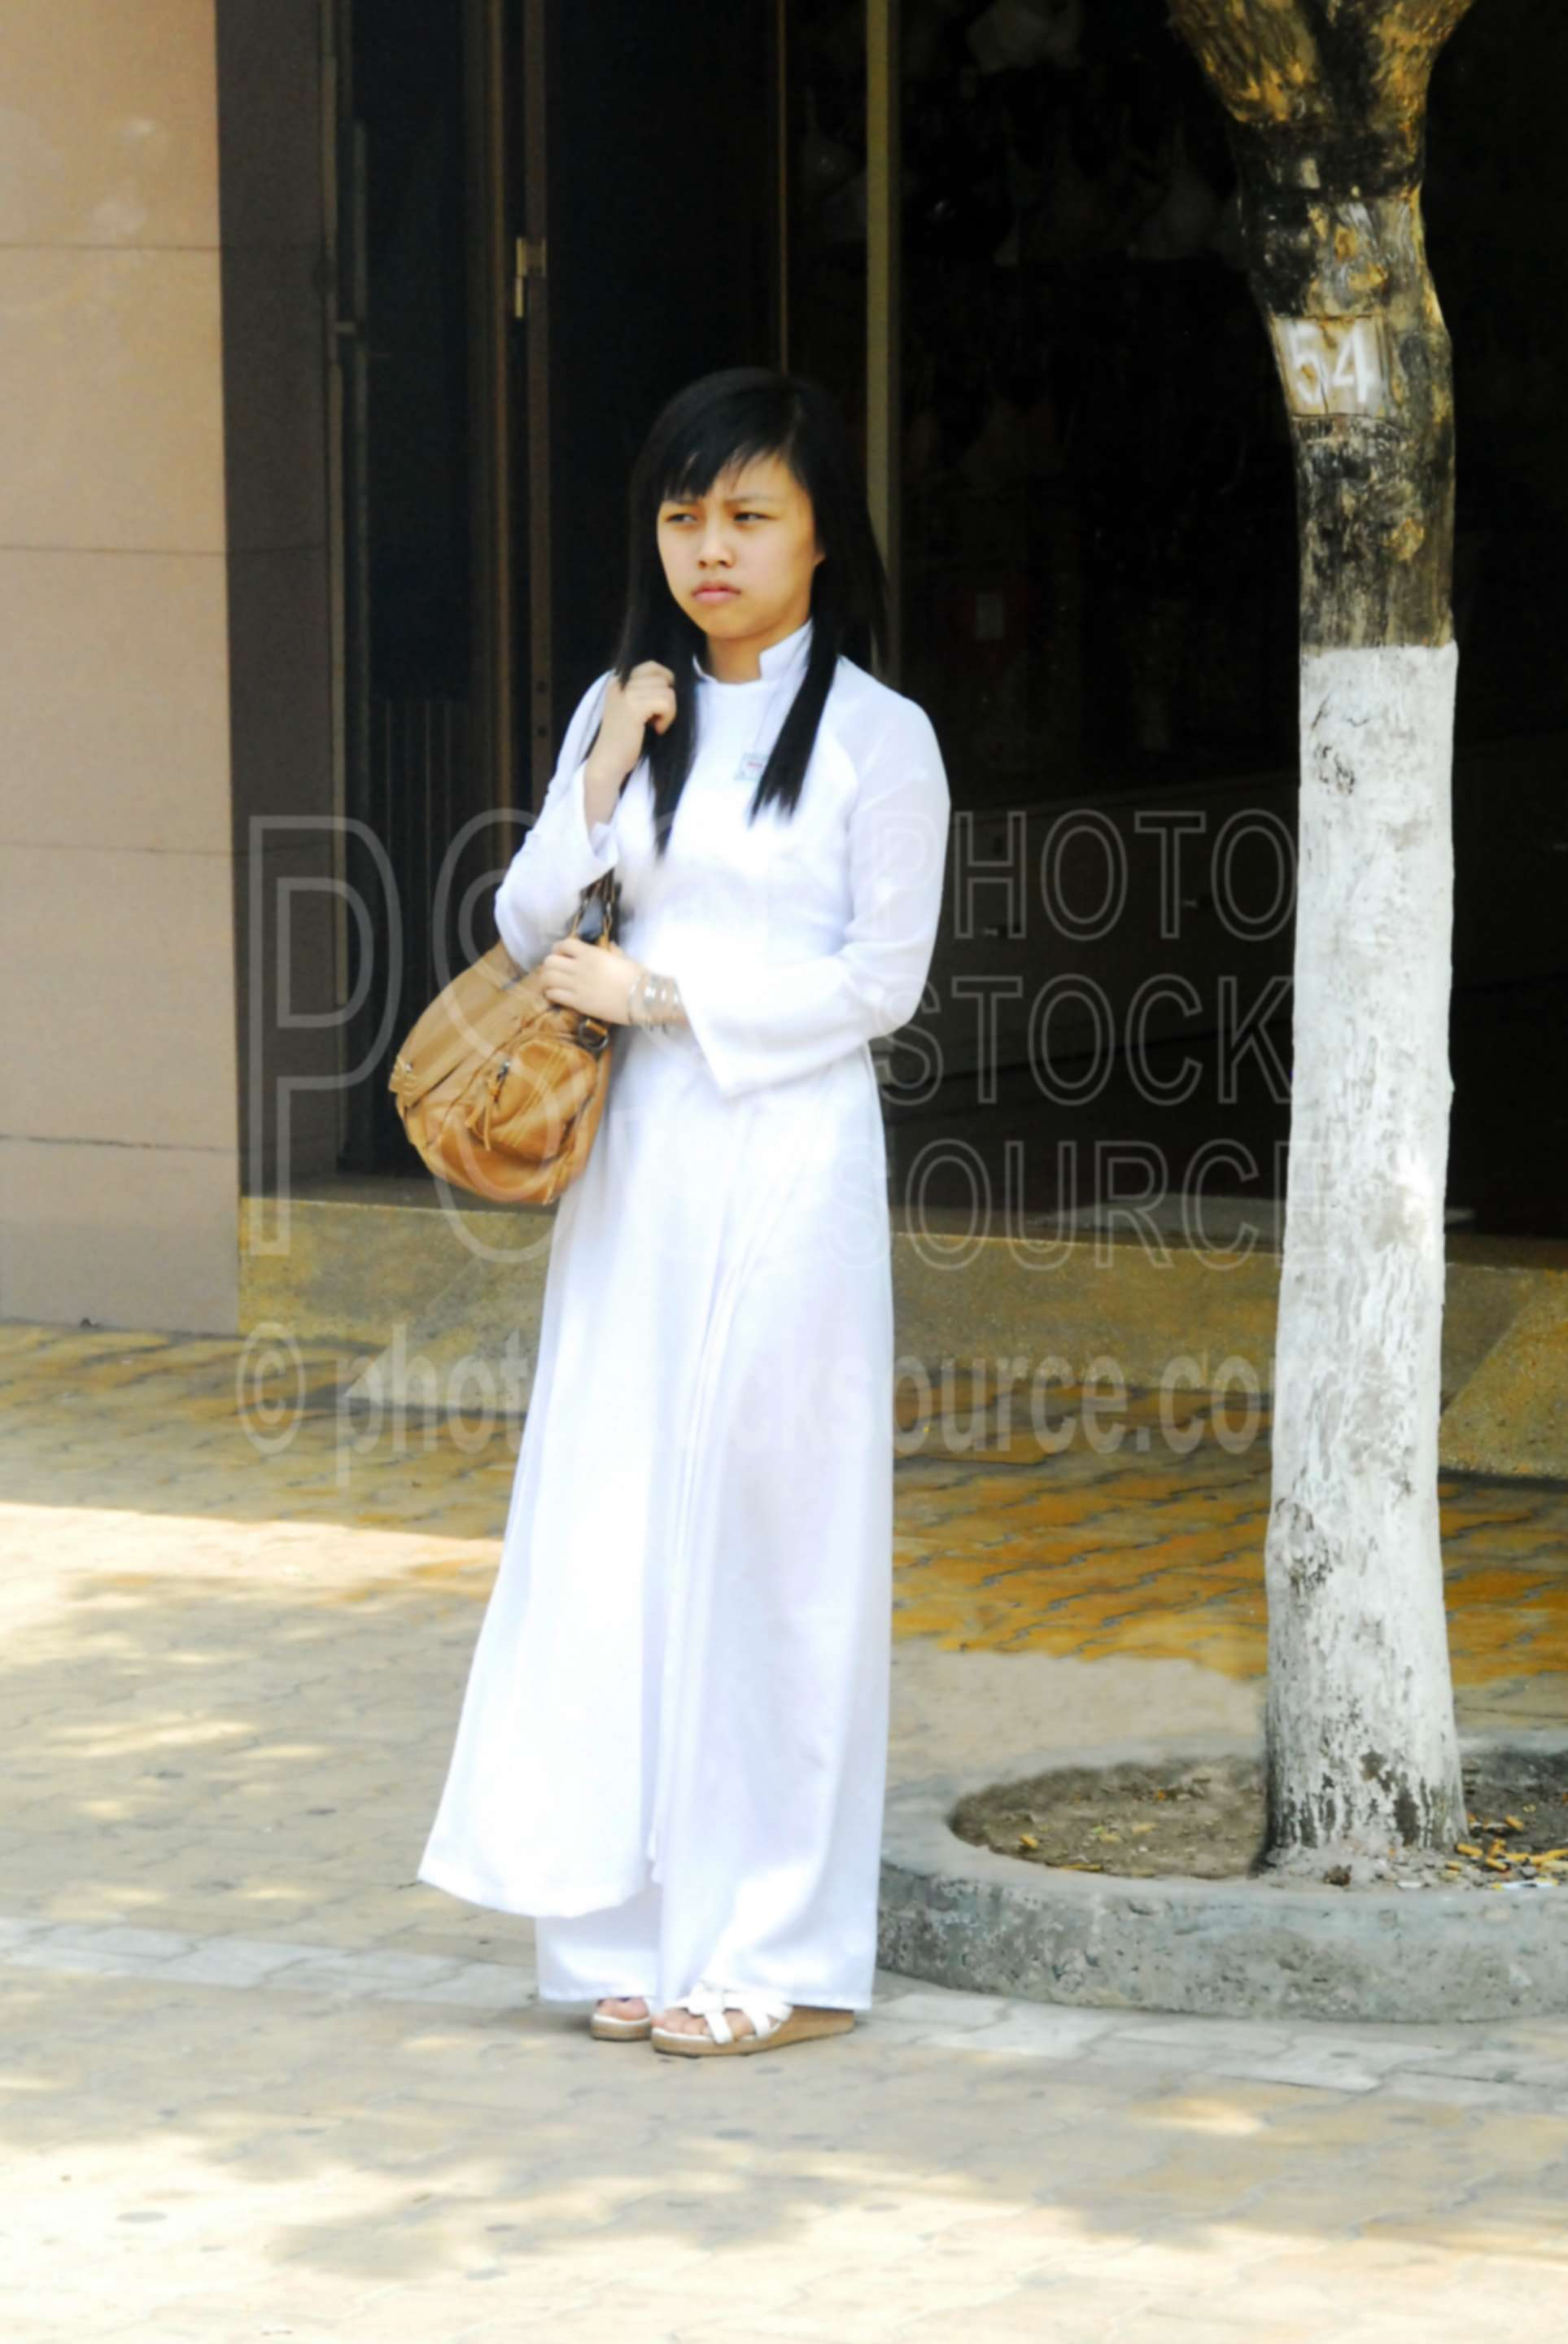 Photo of School Girl in Ao Dai Dress by Photo Stock Source ...